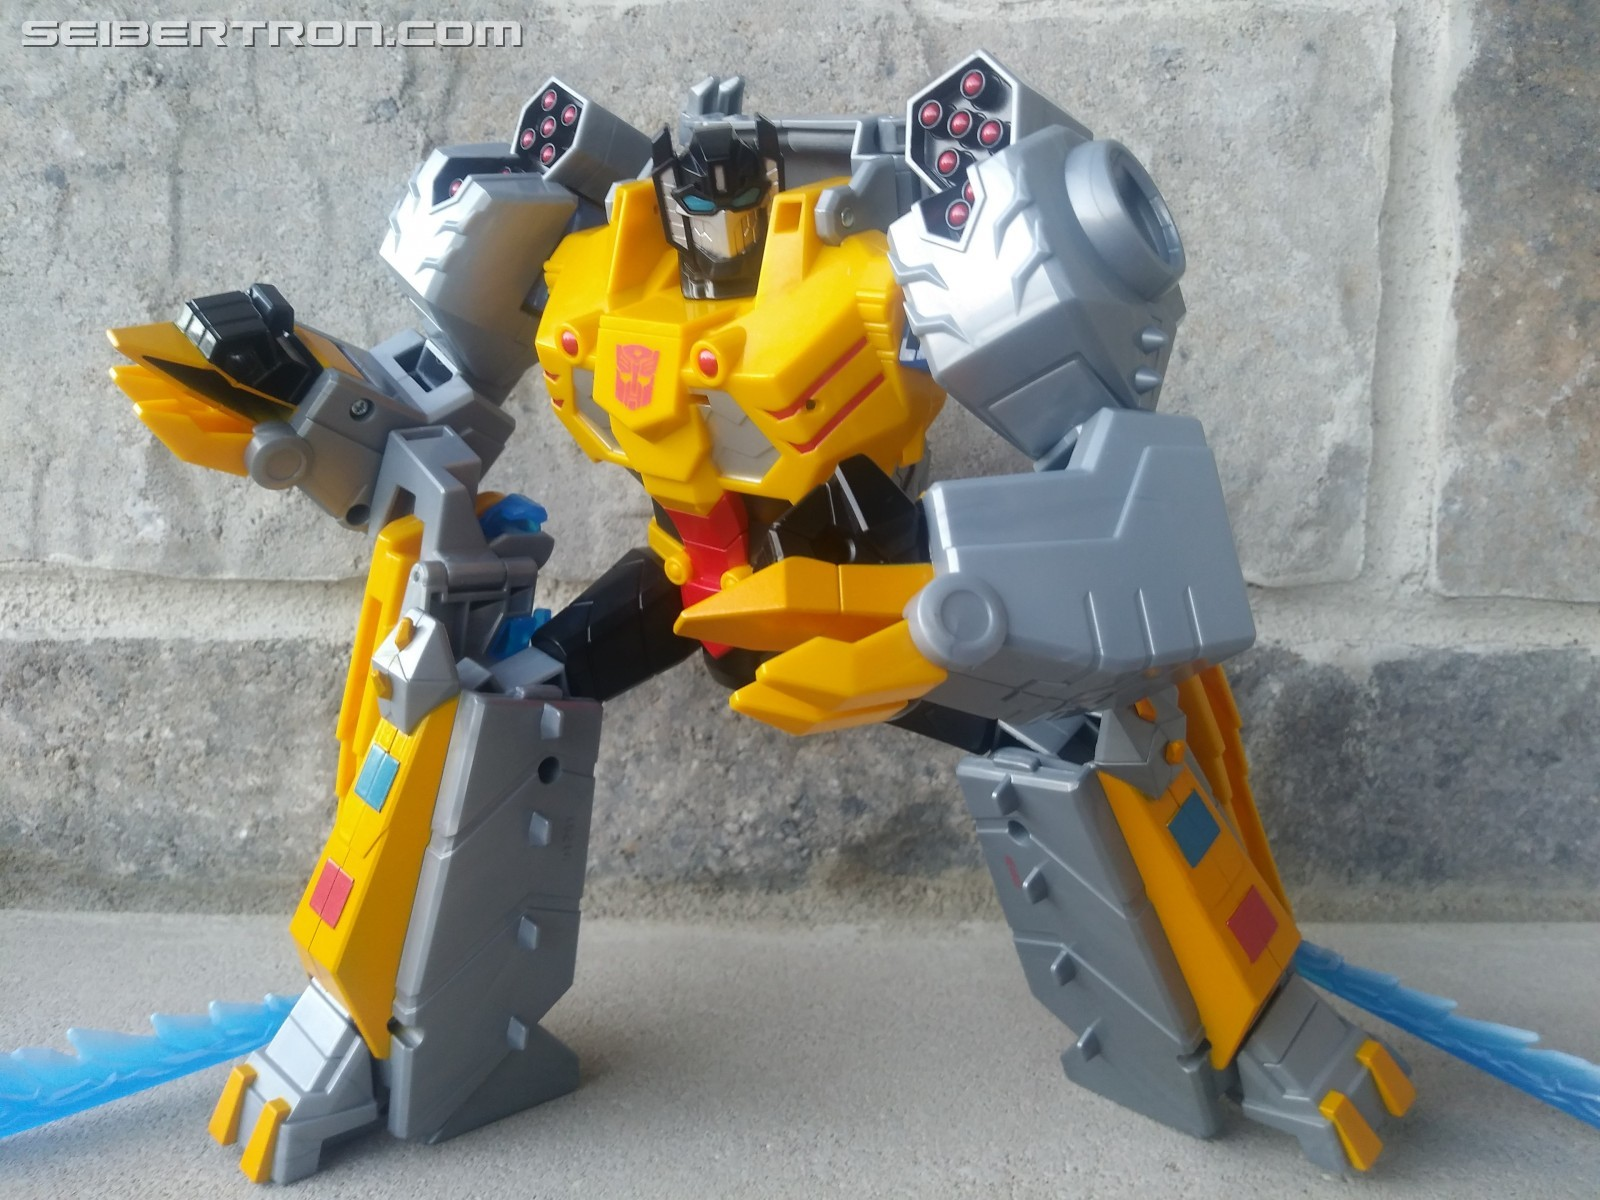 Transformers News: My Pick for the Best Toy to give a Younger Transformers Fan this Christmas